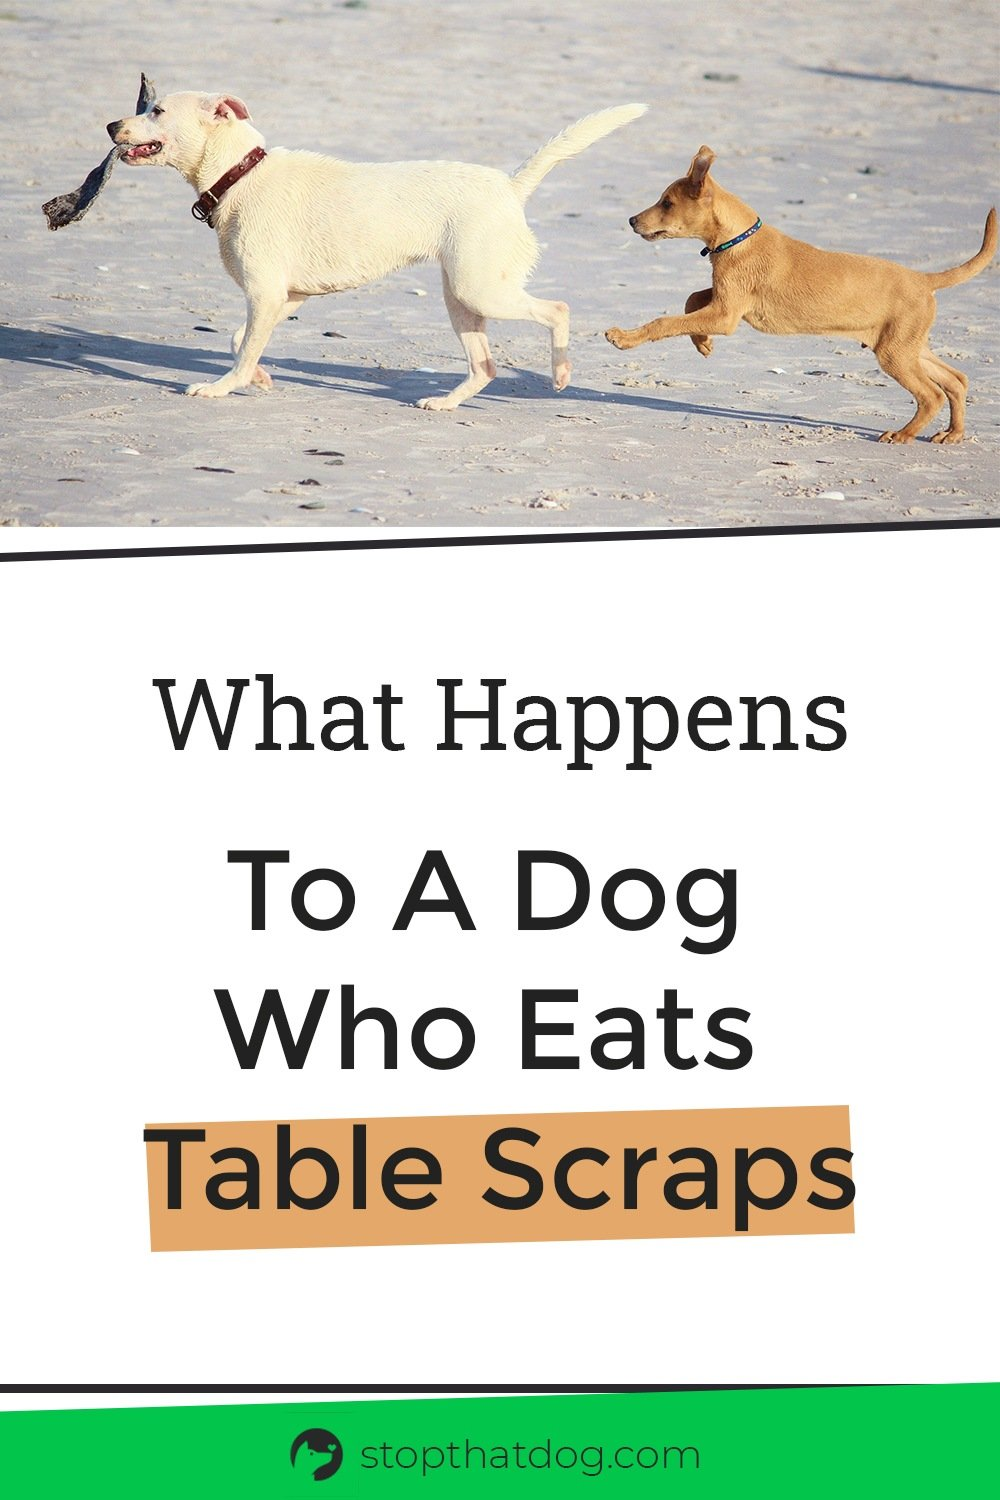 Can I Give Table Scraps To My Dog?